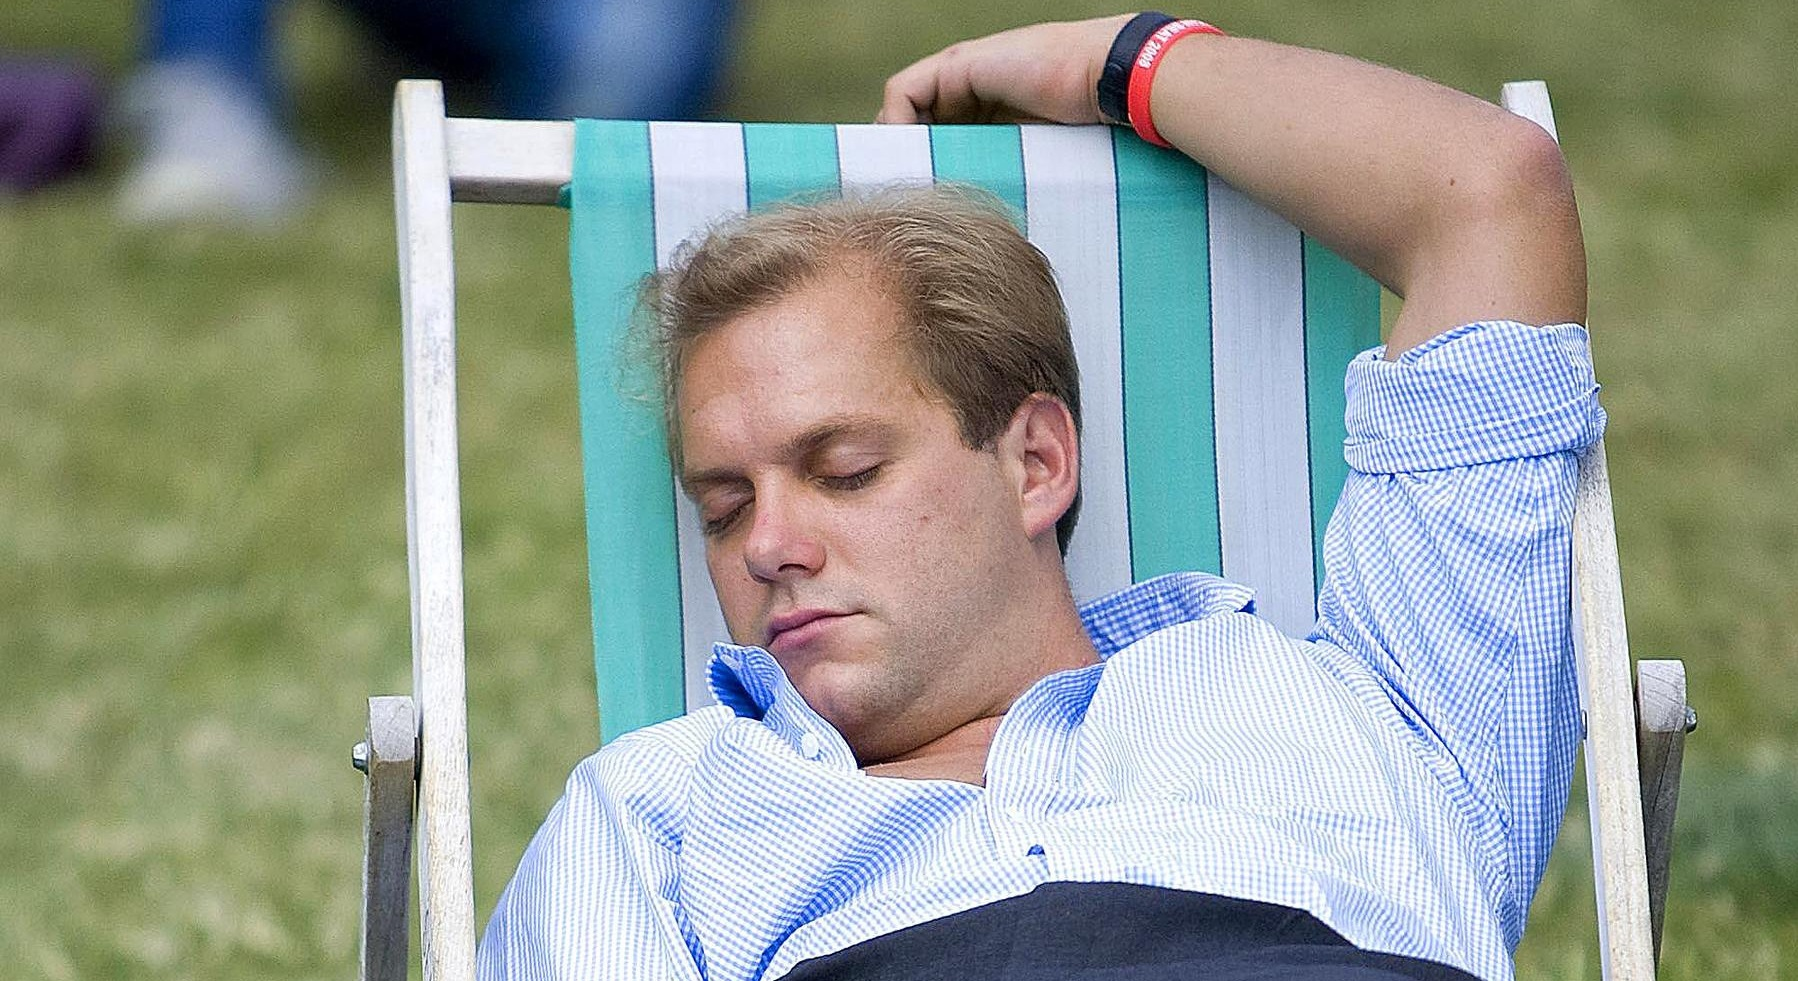 The study found naps of under 30 minutes can improve well-being. Photo: Carl Court/PA